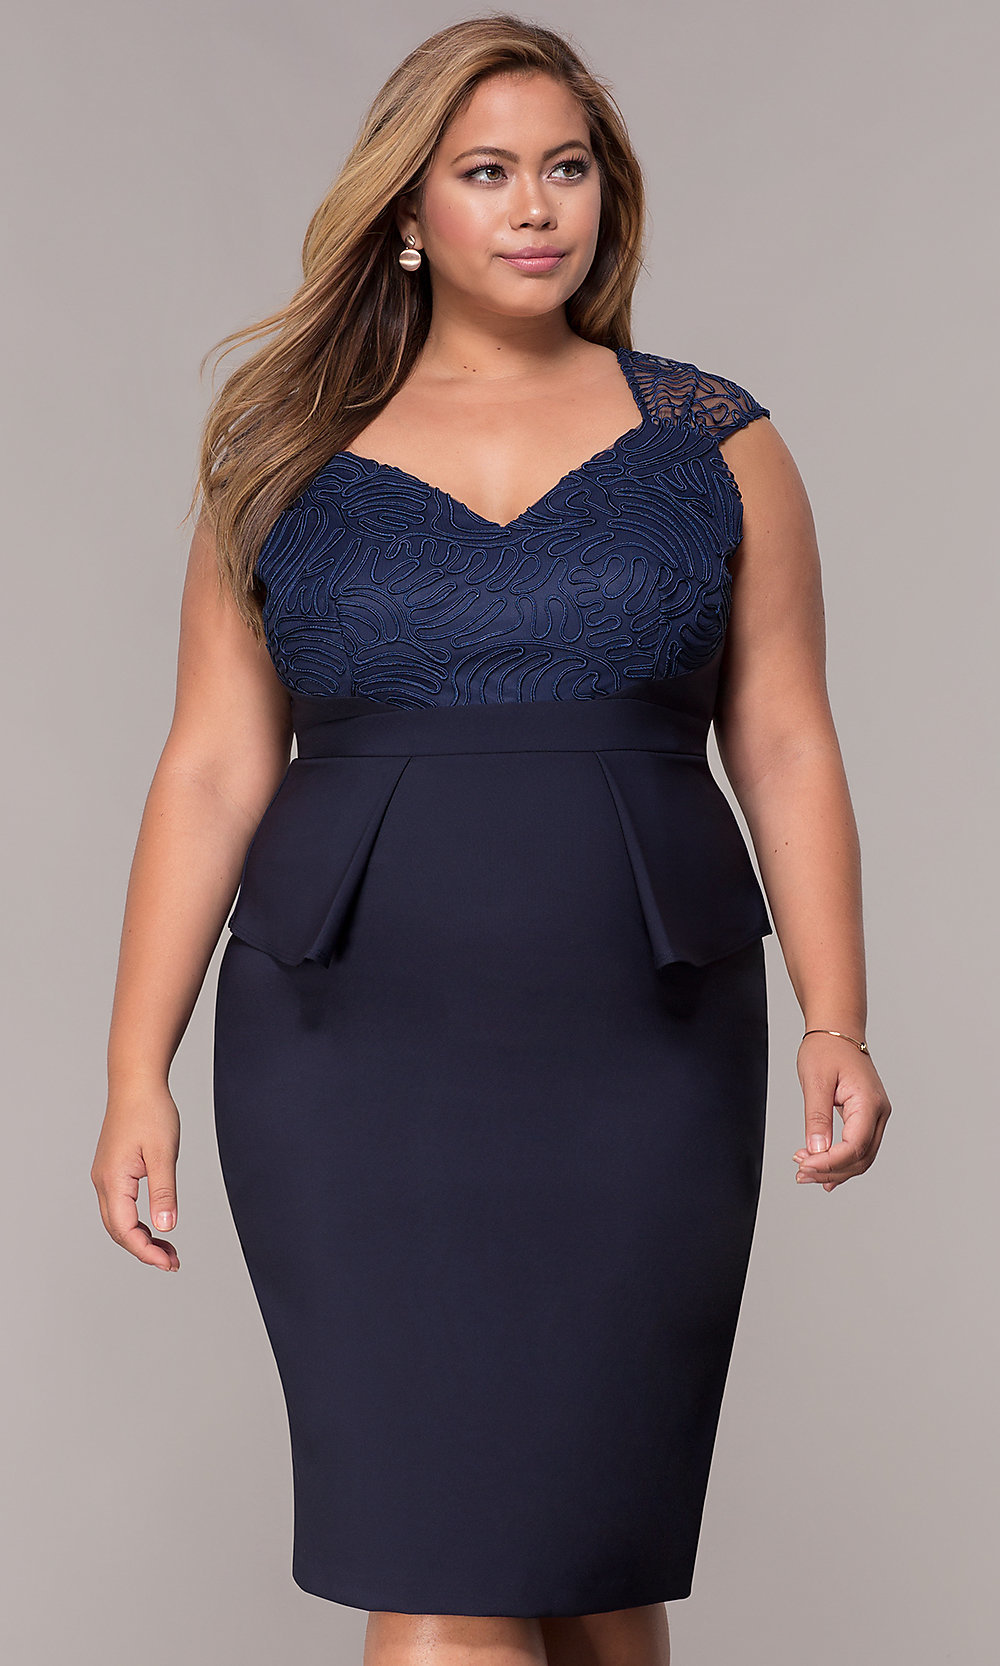 Plus-Size Knee-Length Navy Blue MOB Dress